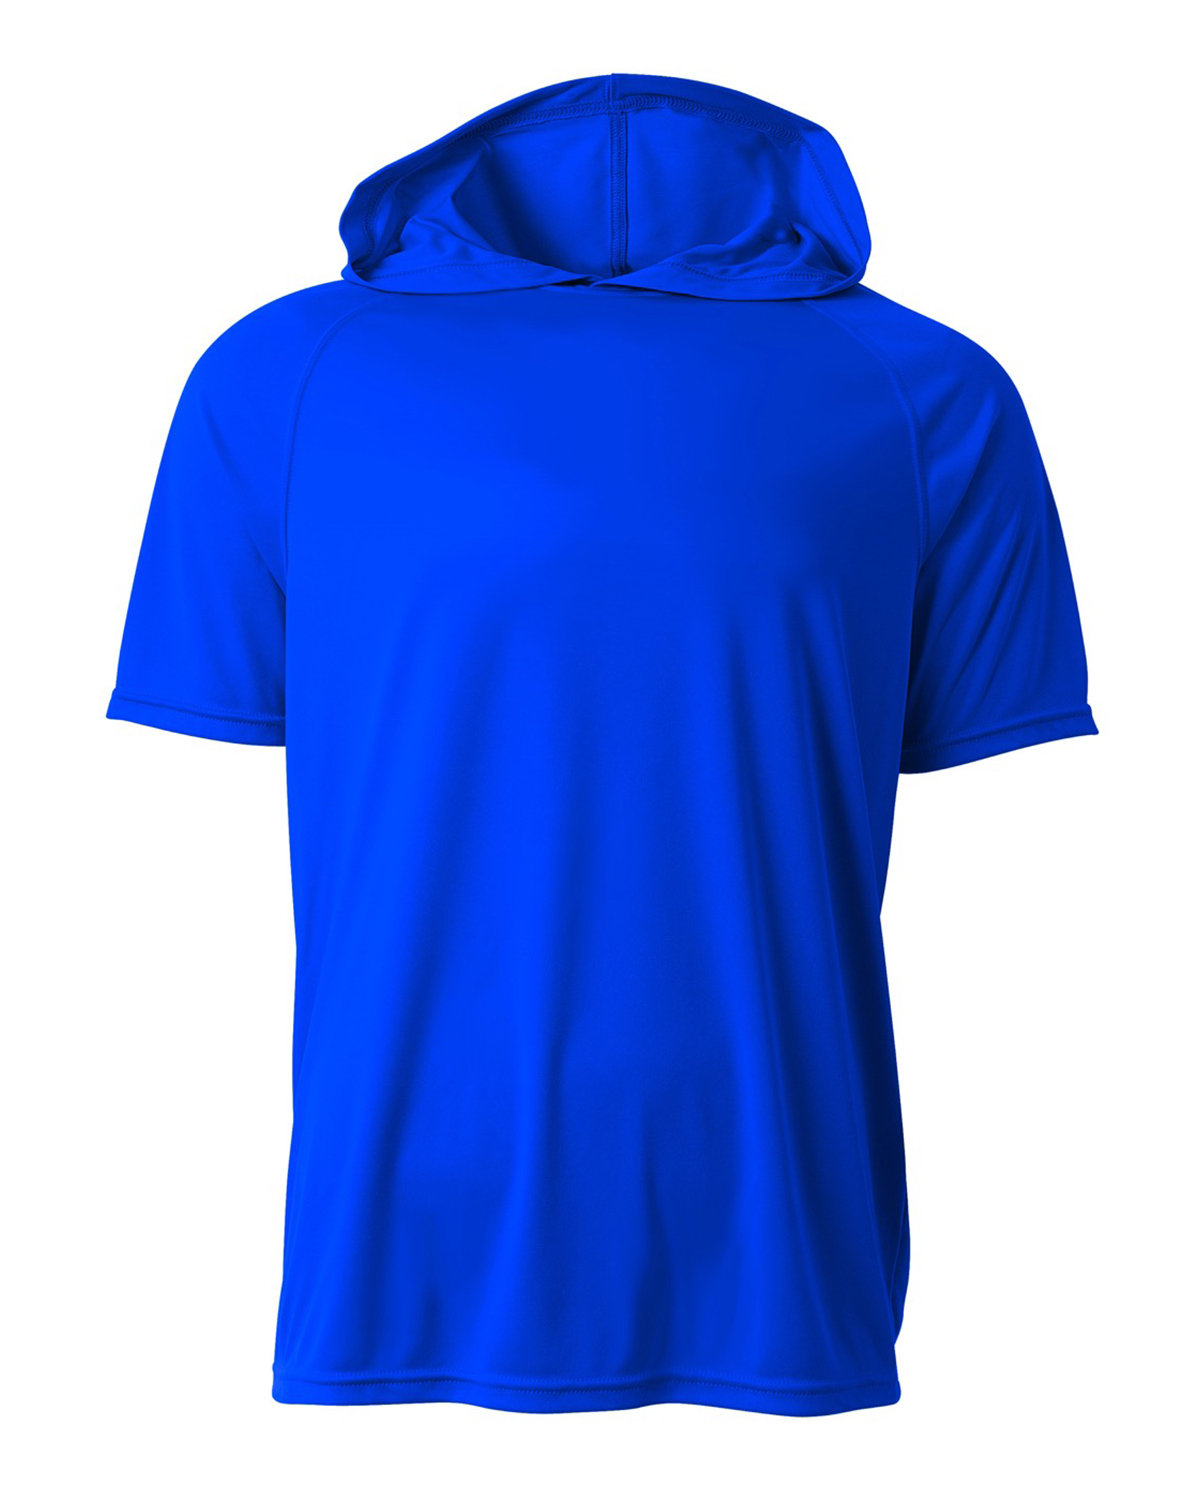 A4 Men's Cooling Performance Hooded T-shirt ROYAL